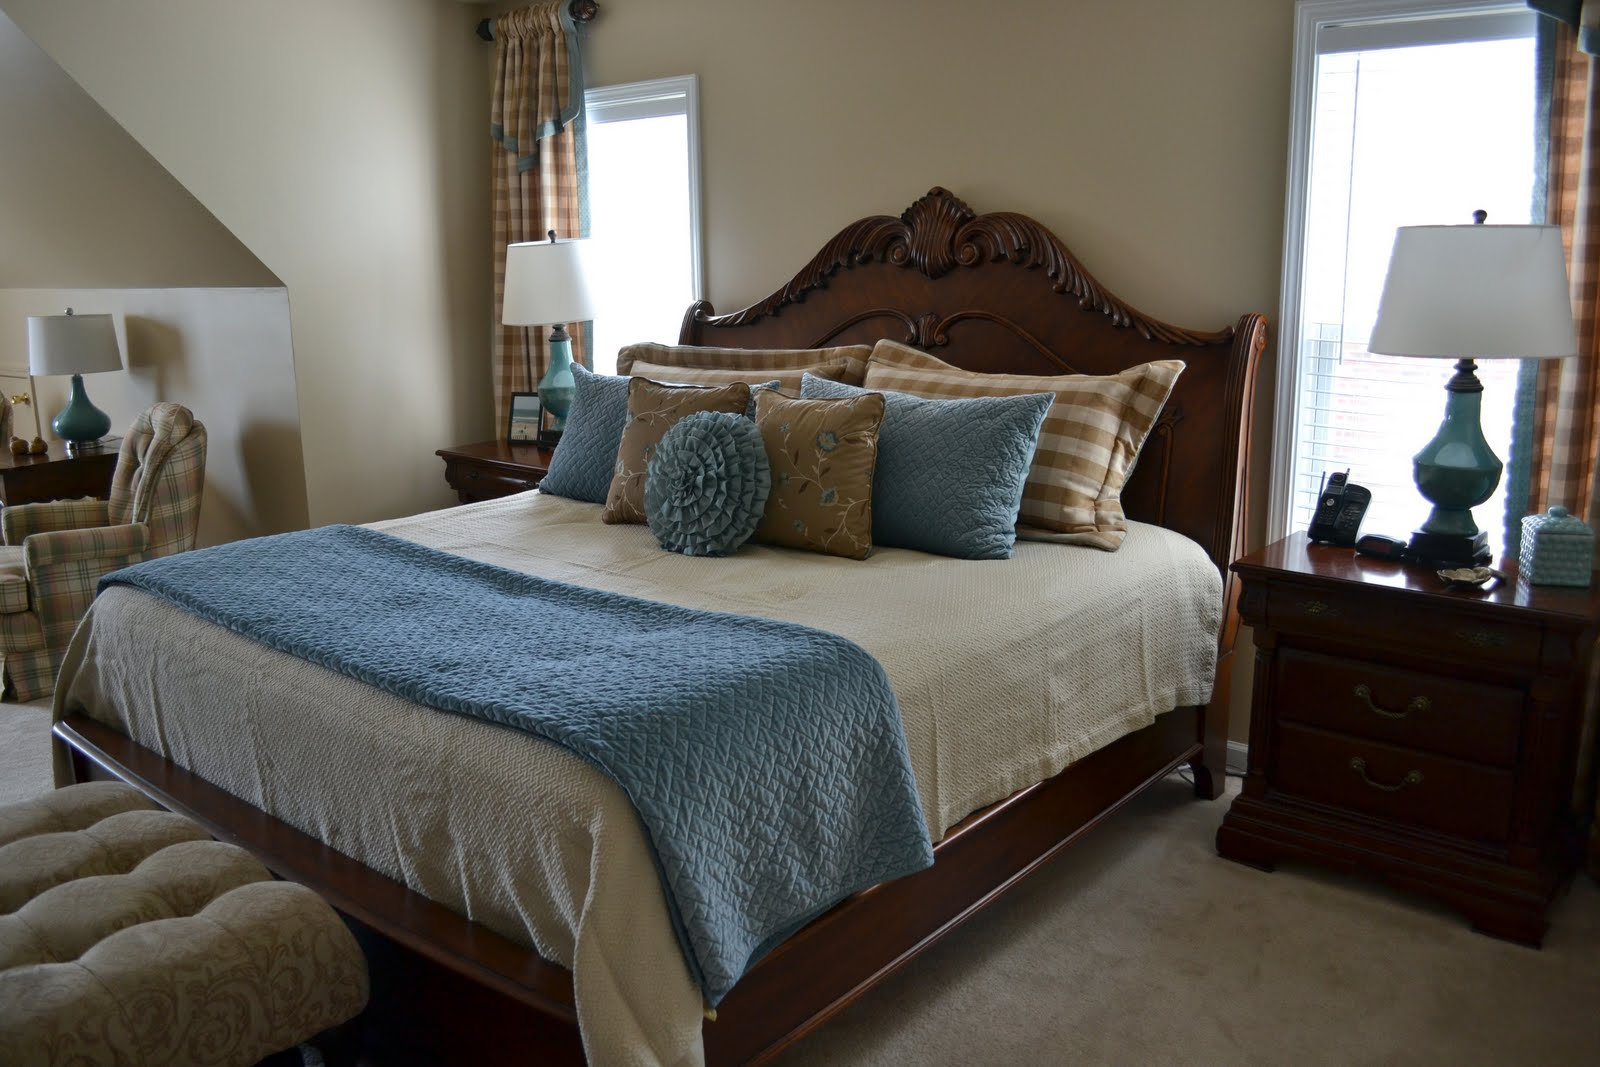 Bedroom Renovation Featuring Buffalo Check Curtains